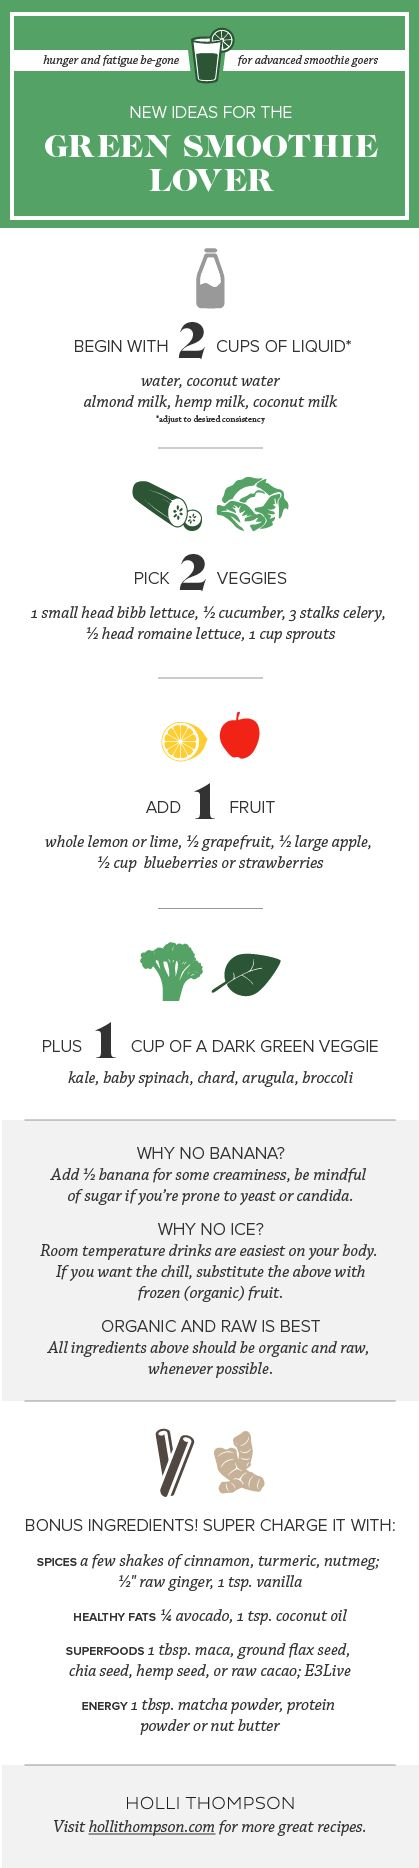 Green Smoothie Lover